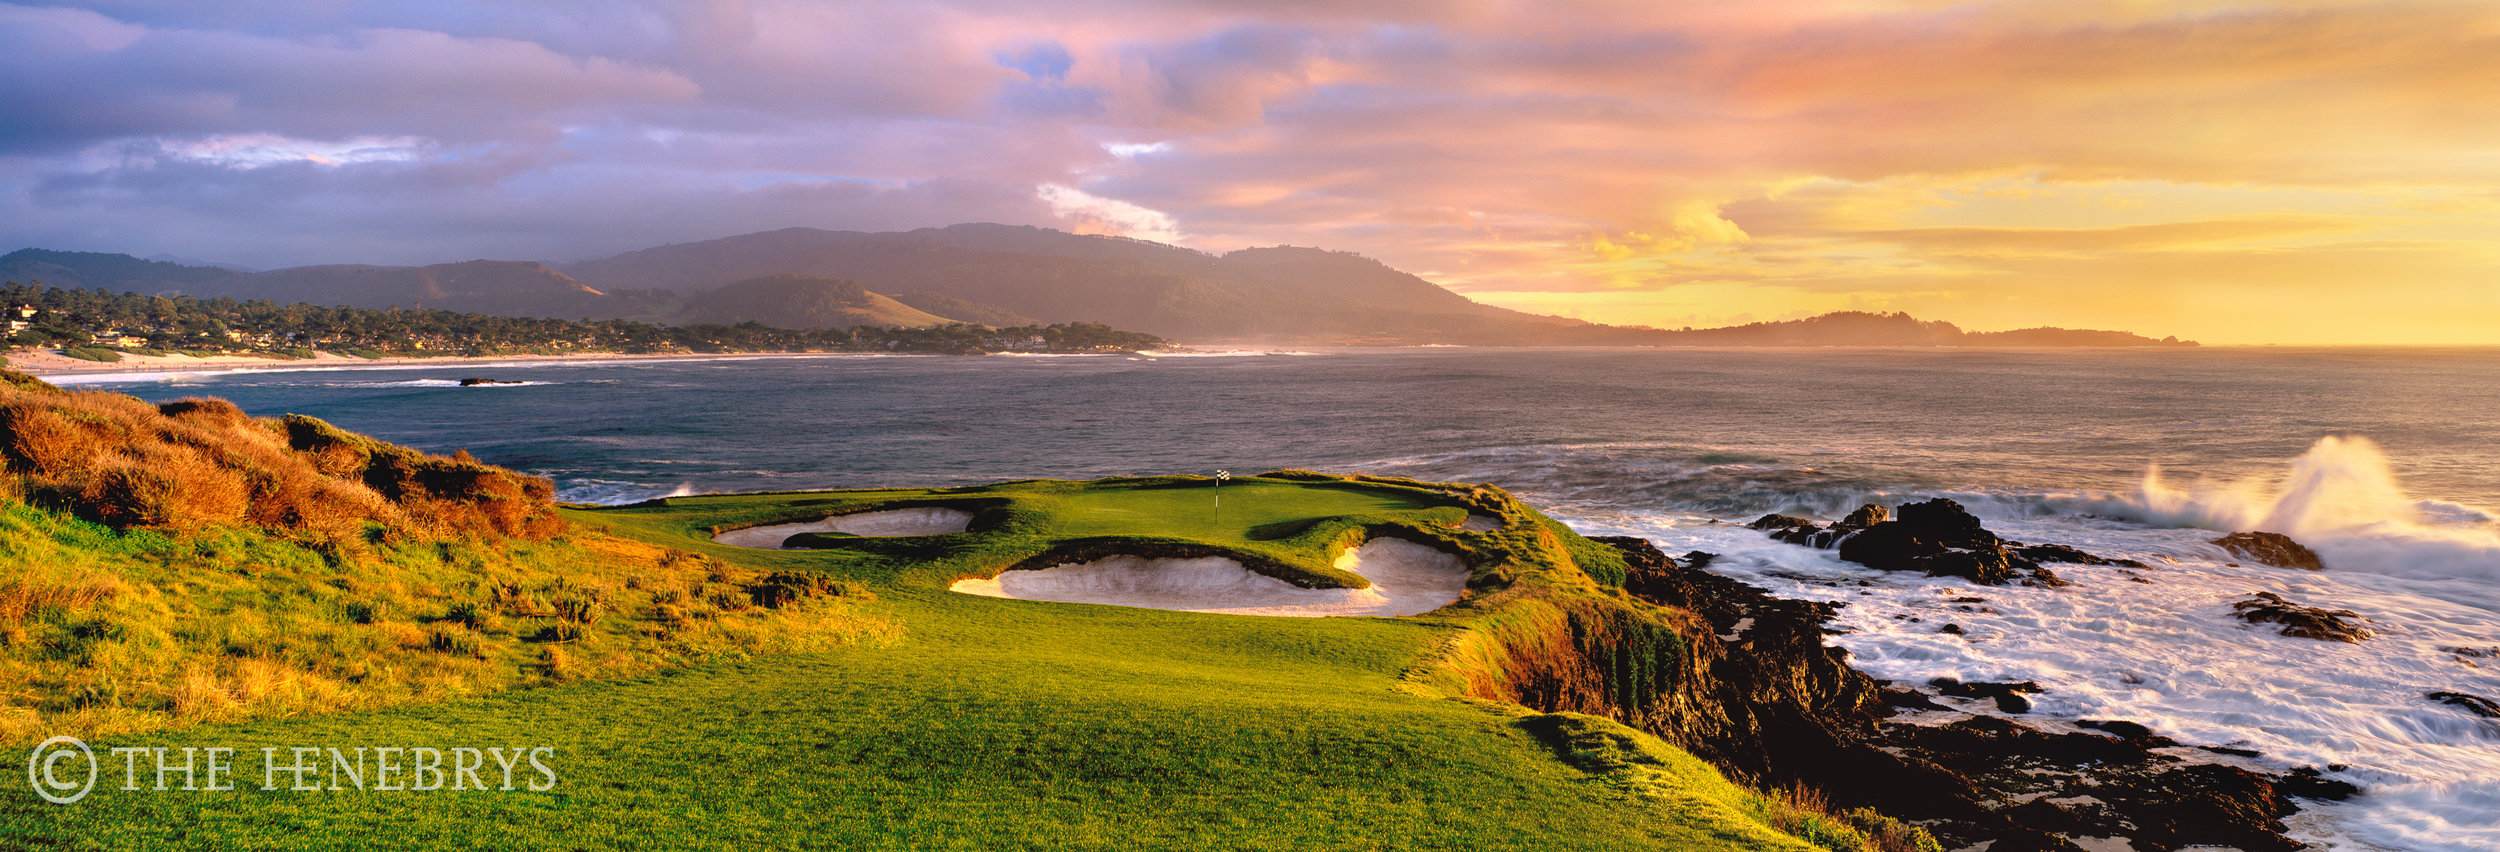 """""""After The Storm"""" 7th Pebble Beach Golf Links®, California"""